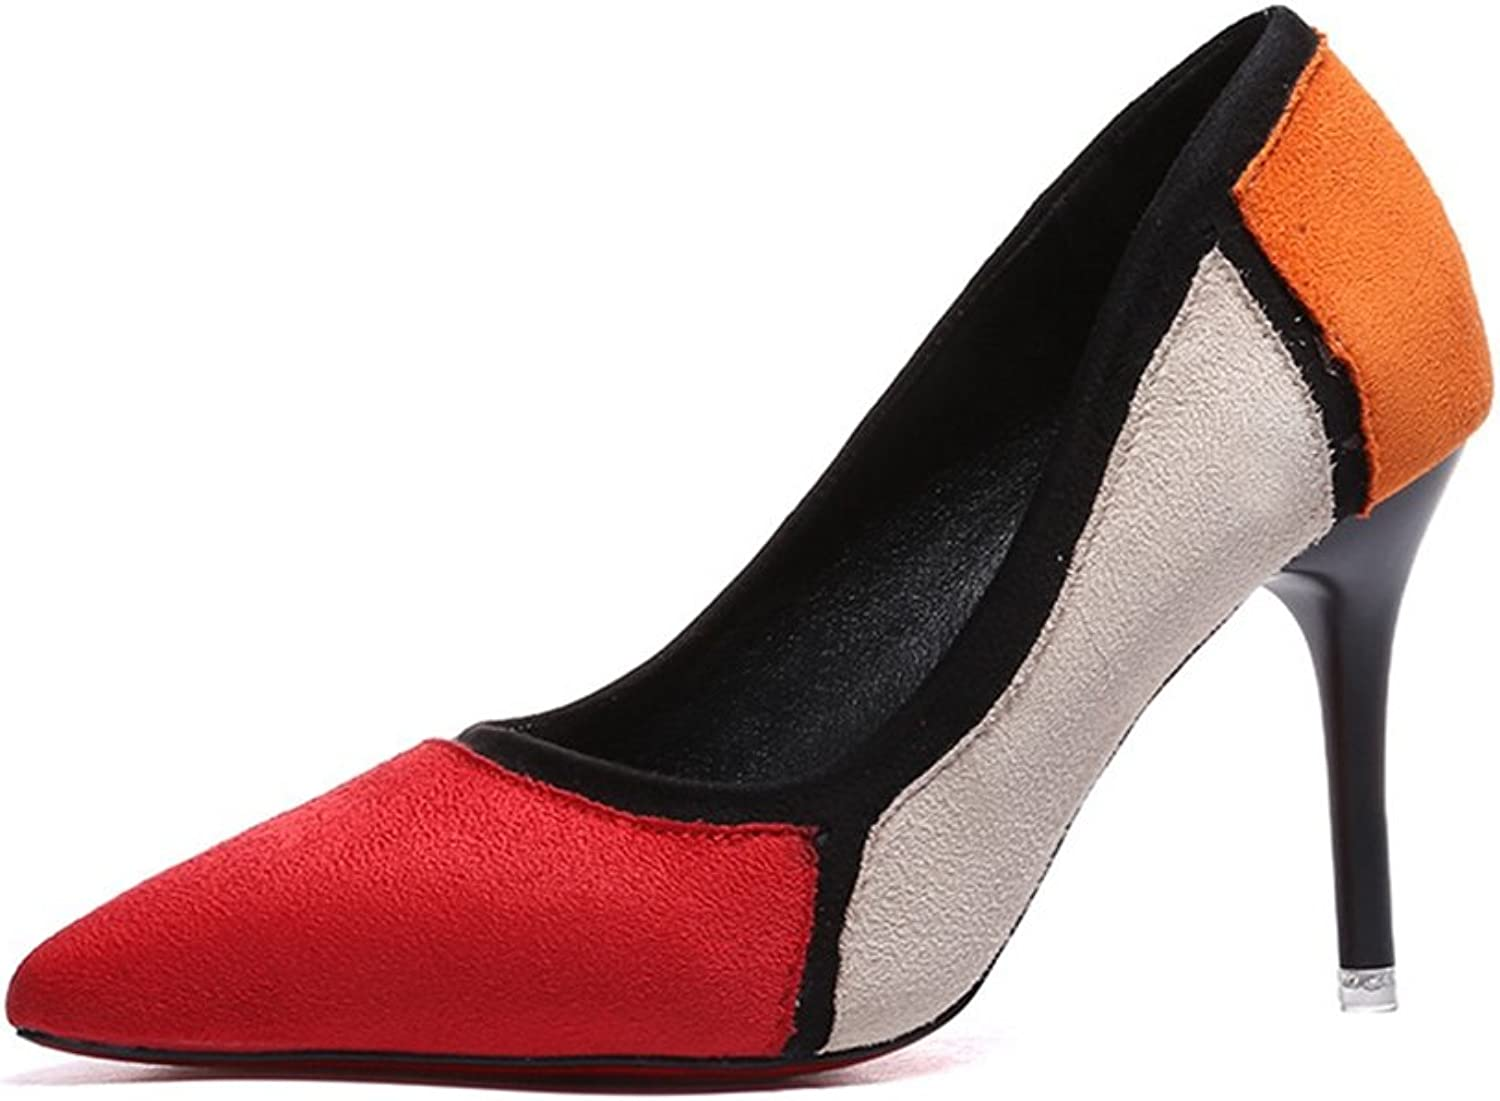 T-JULY Penny Loafers shoes for Women - Modern Slip On High Heel Pointed Toe Suede